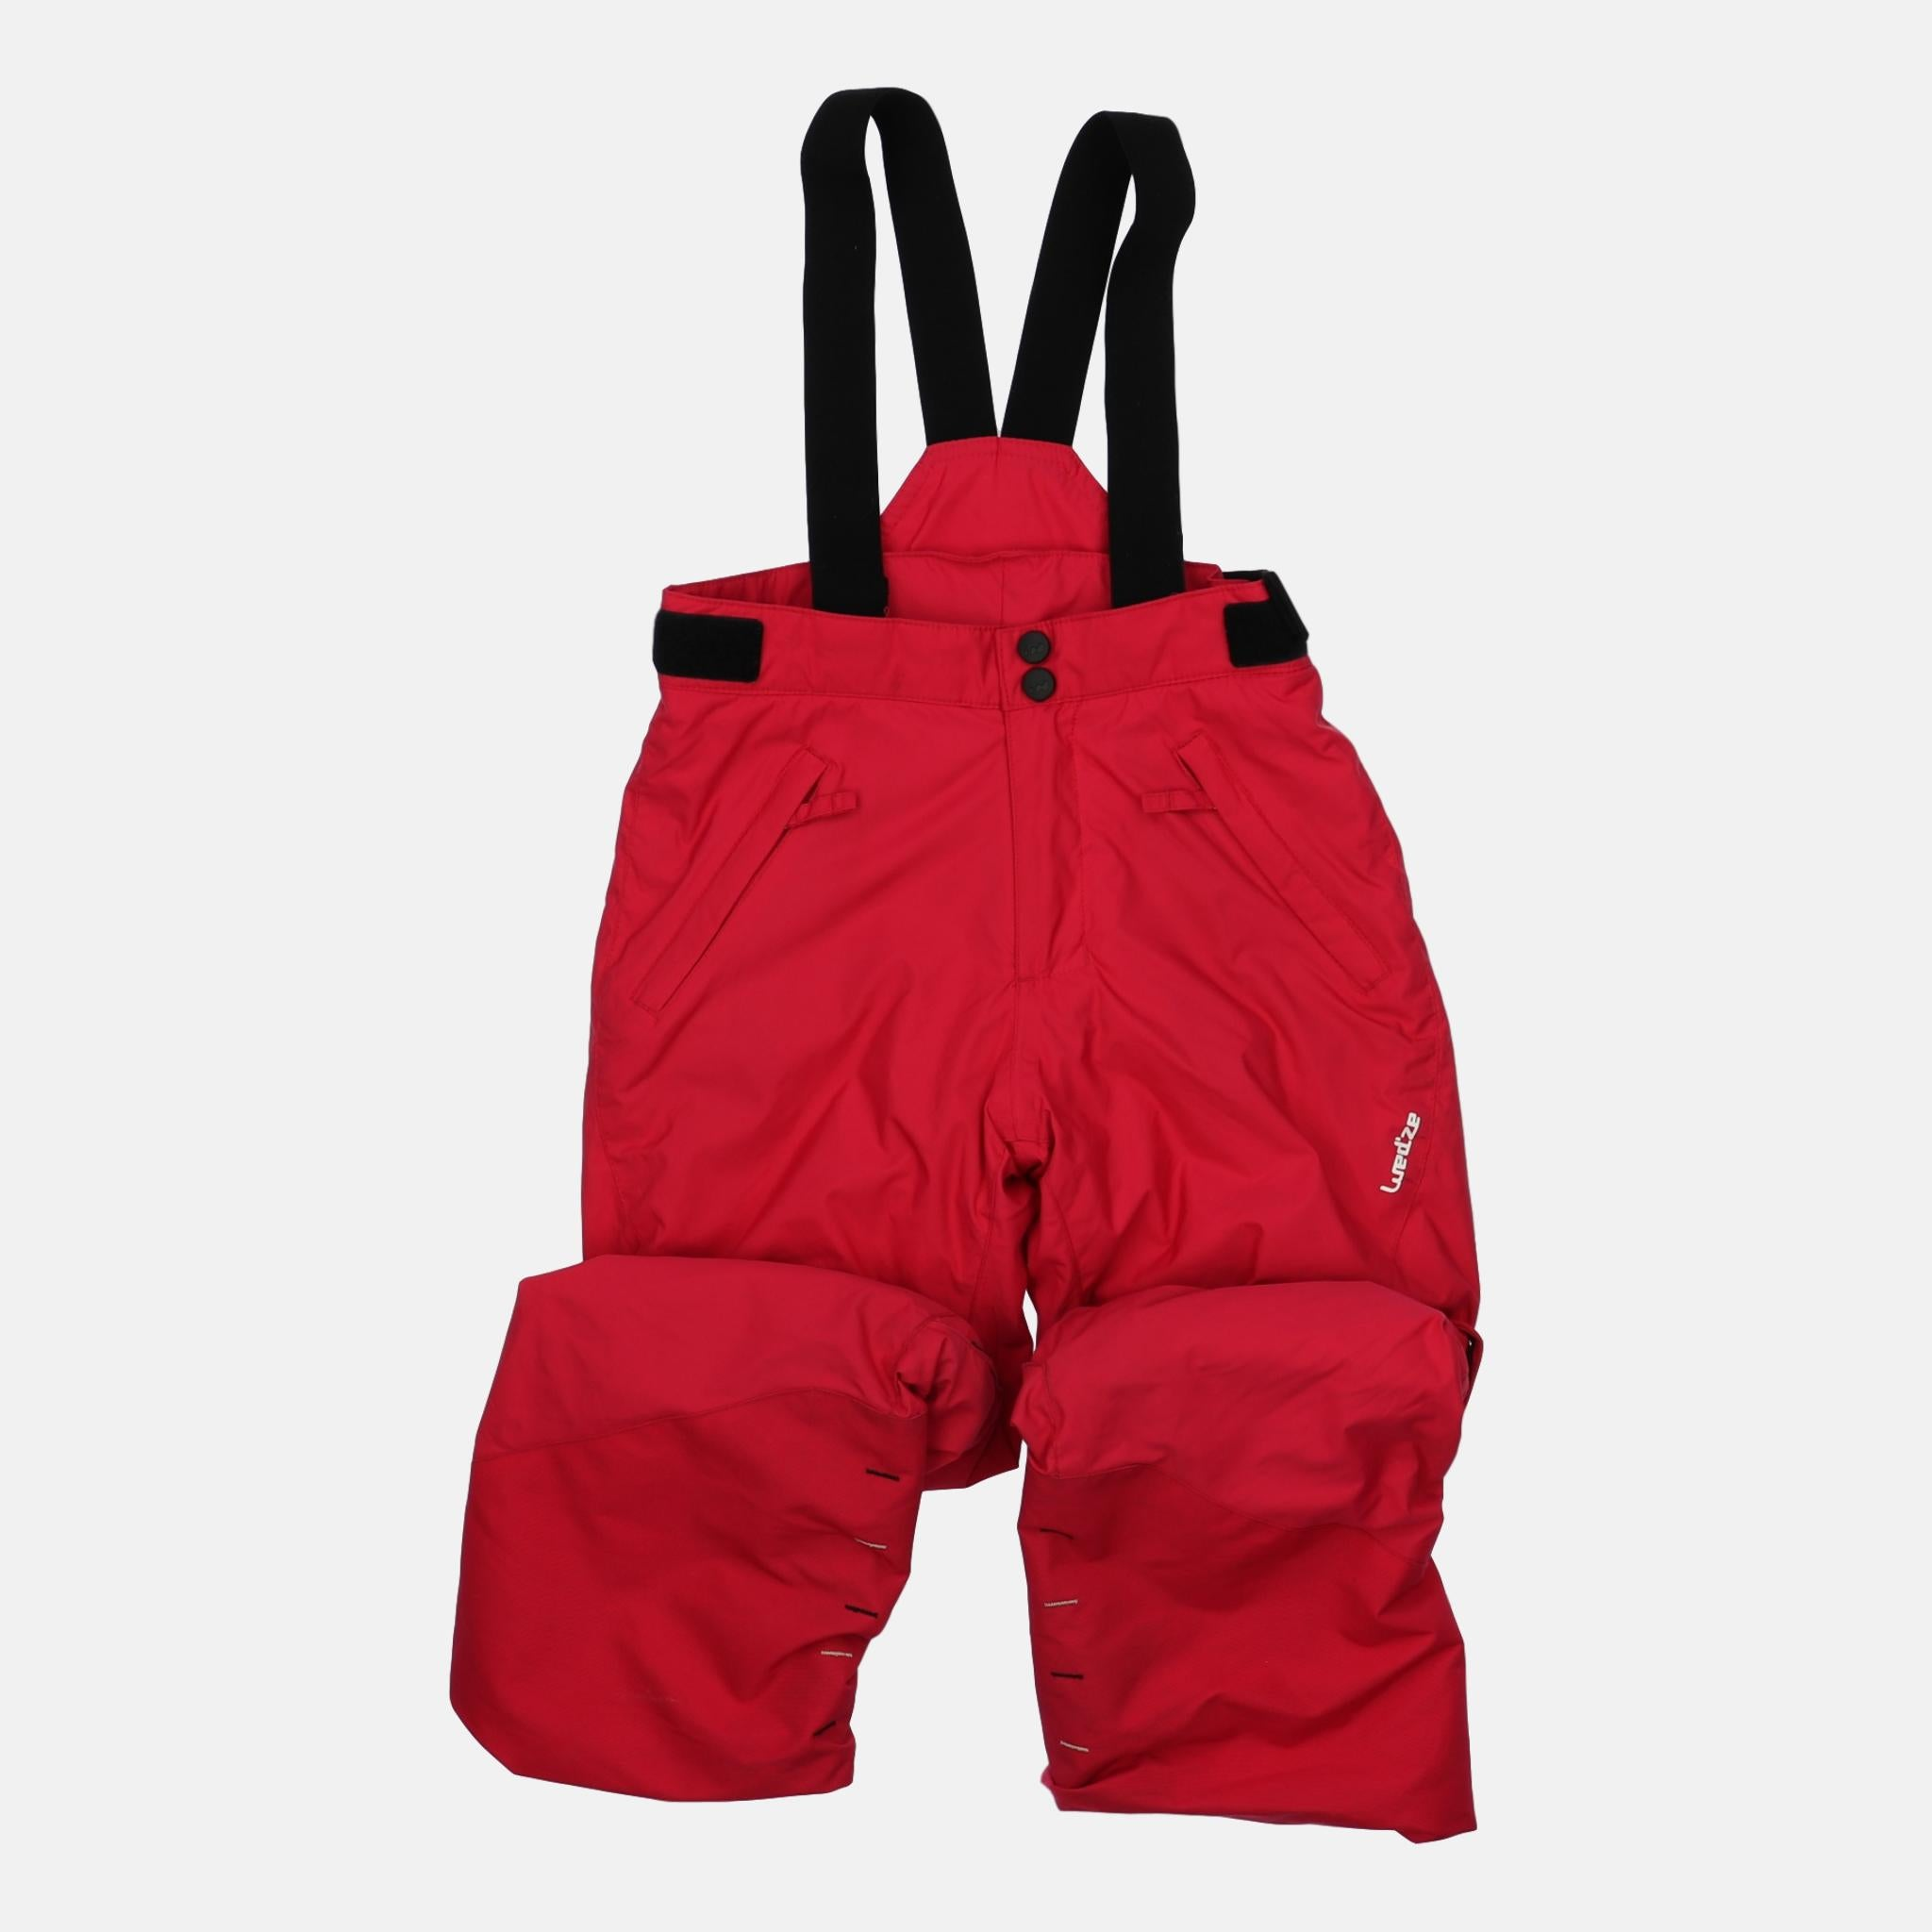 Snow Suit, 6-7 Years